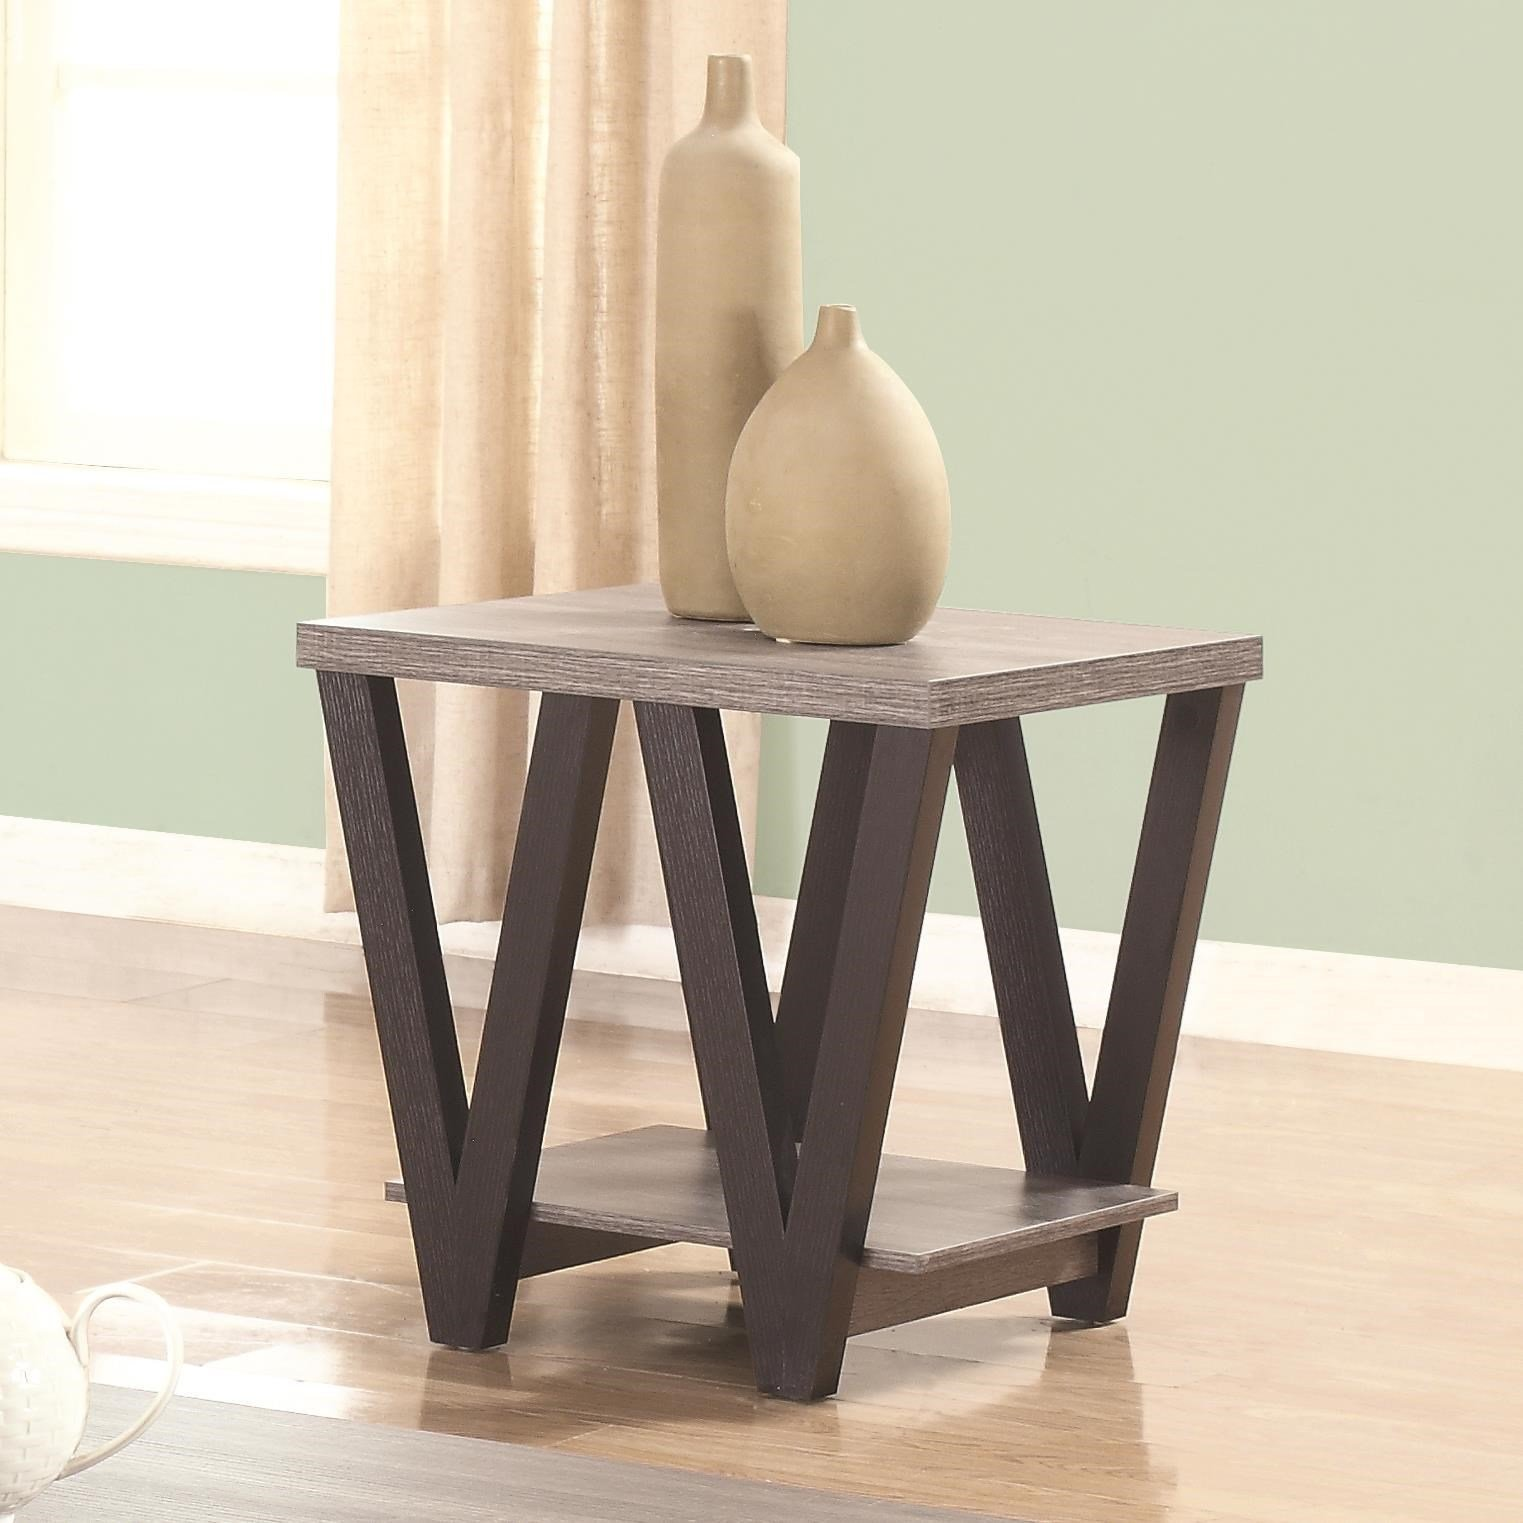 Coaster Home Furnishings 705397 End Table, Black/Grey